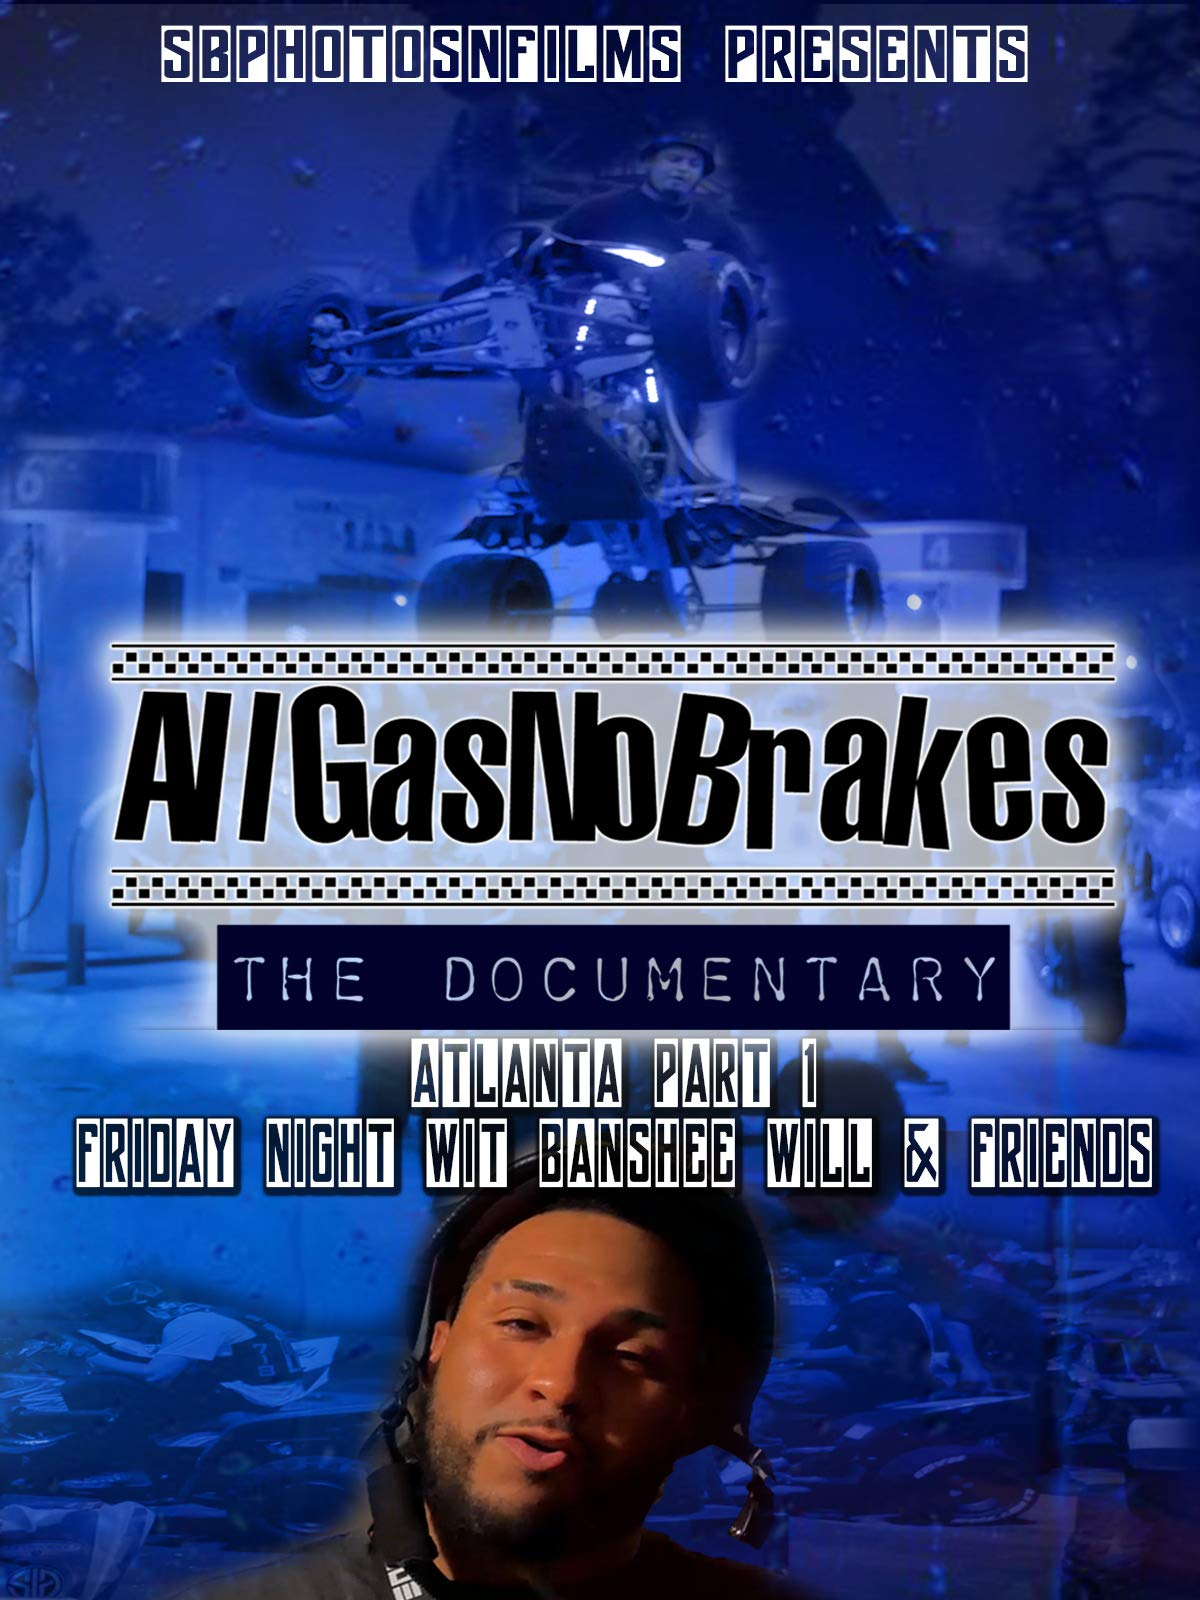 All Gas No Brakes The Documentary Atlanta Part 1 Friday Night Wit Banshee Will & Friends